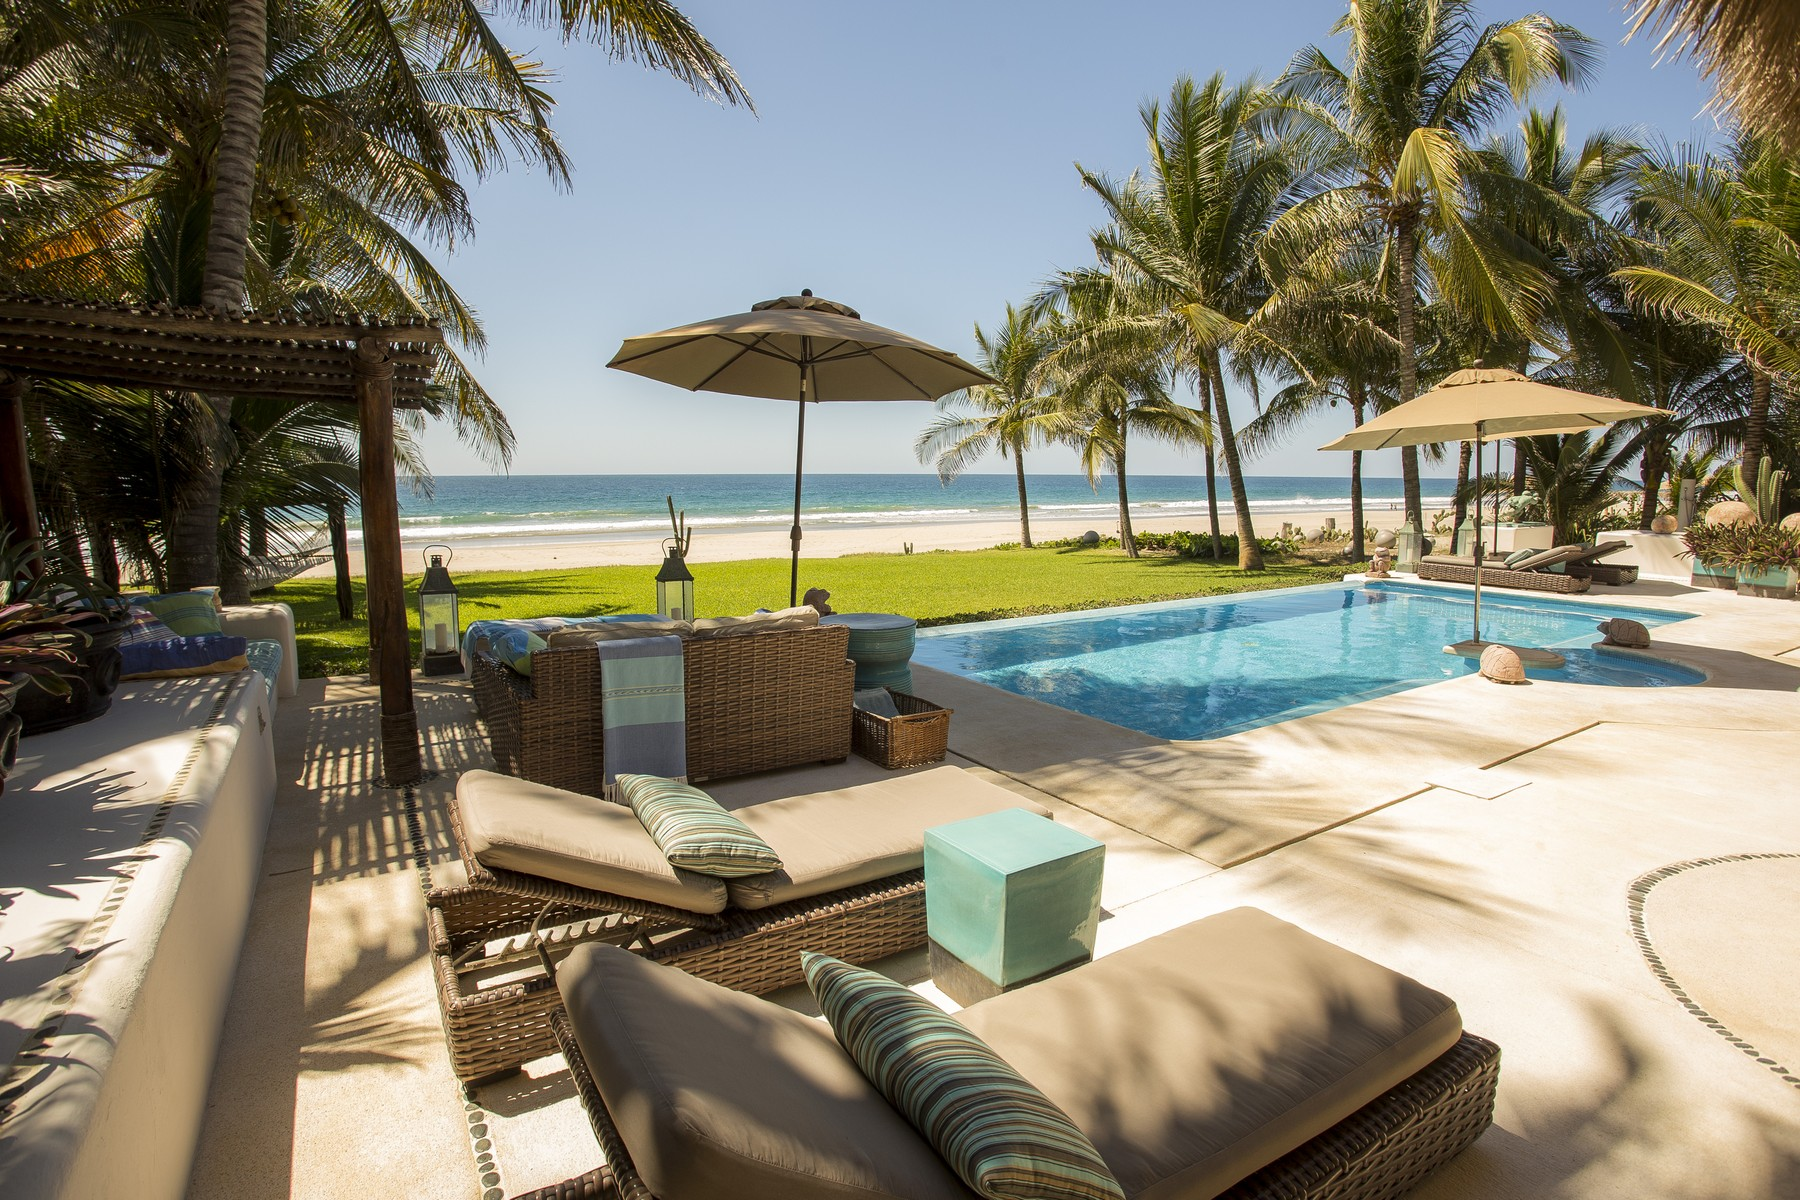 Additional photo for property listing at Luxury Oceanfront Villa, Puerto Escondido, Oaxaca Lote 28 A Puerto Escondido, Oaxaca 70934 Mexico